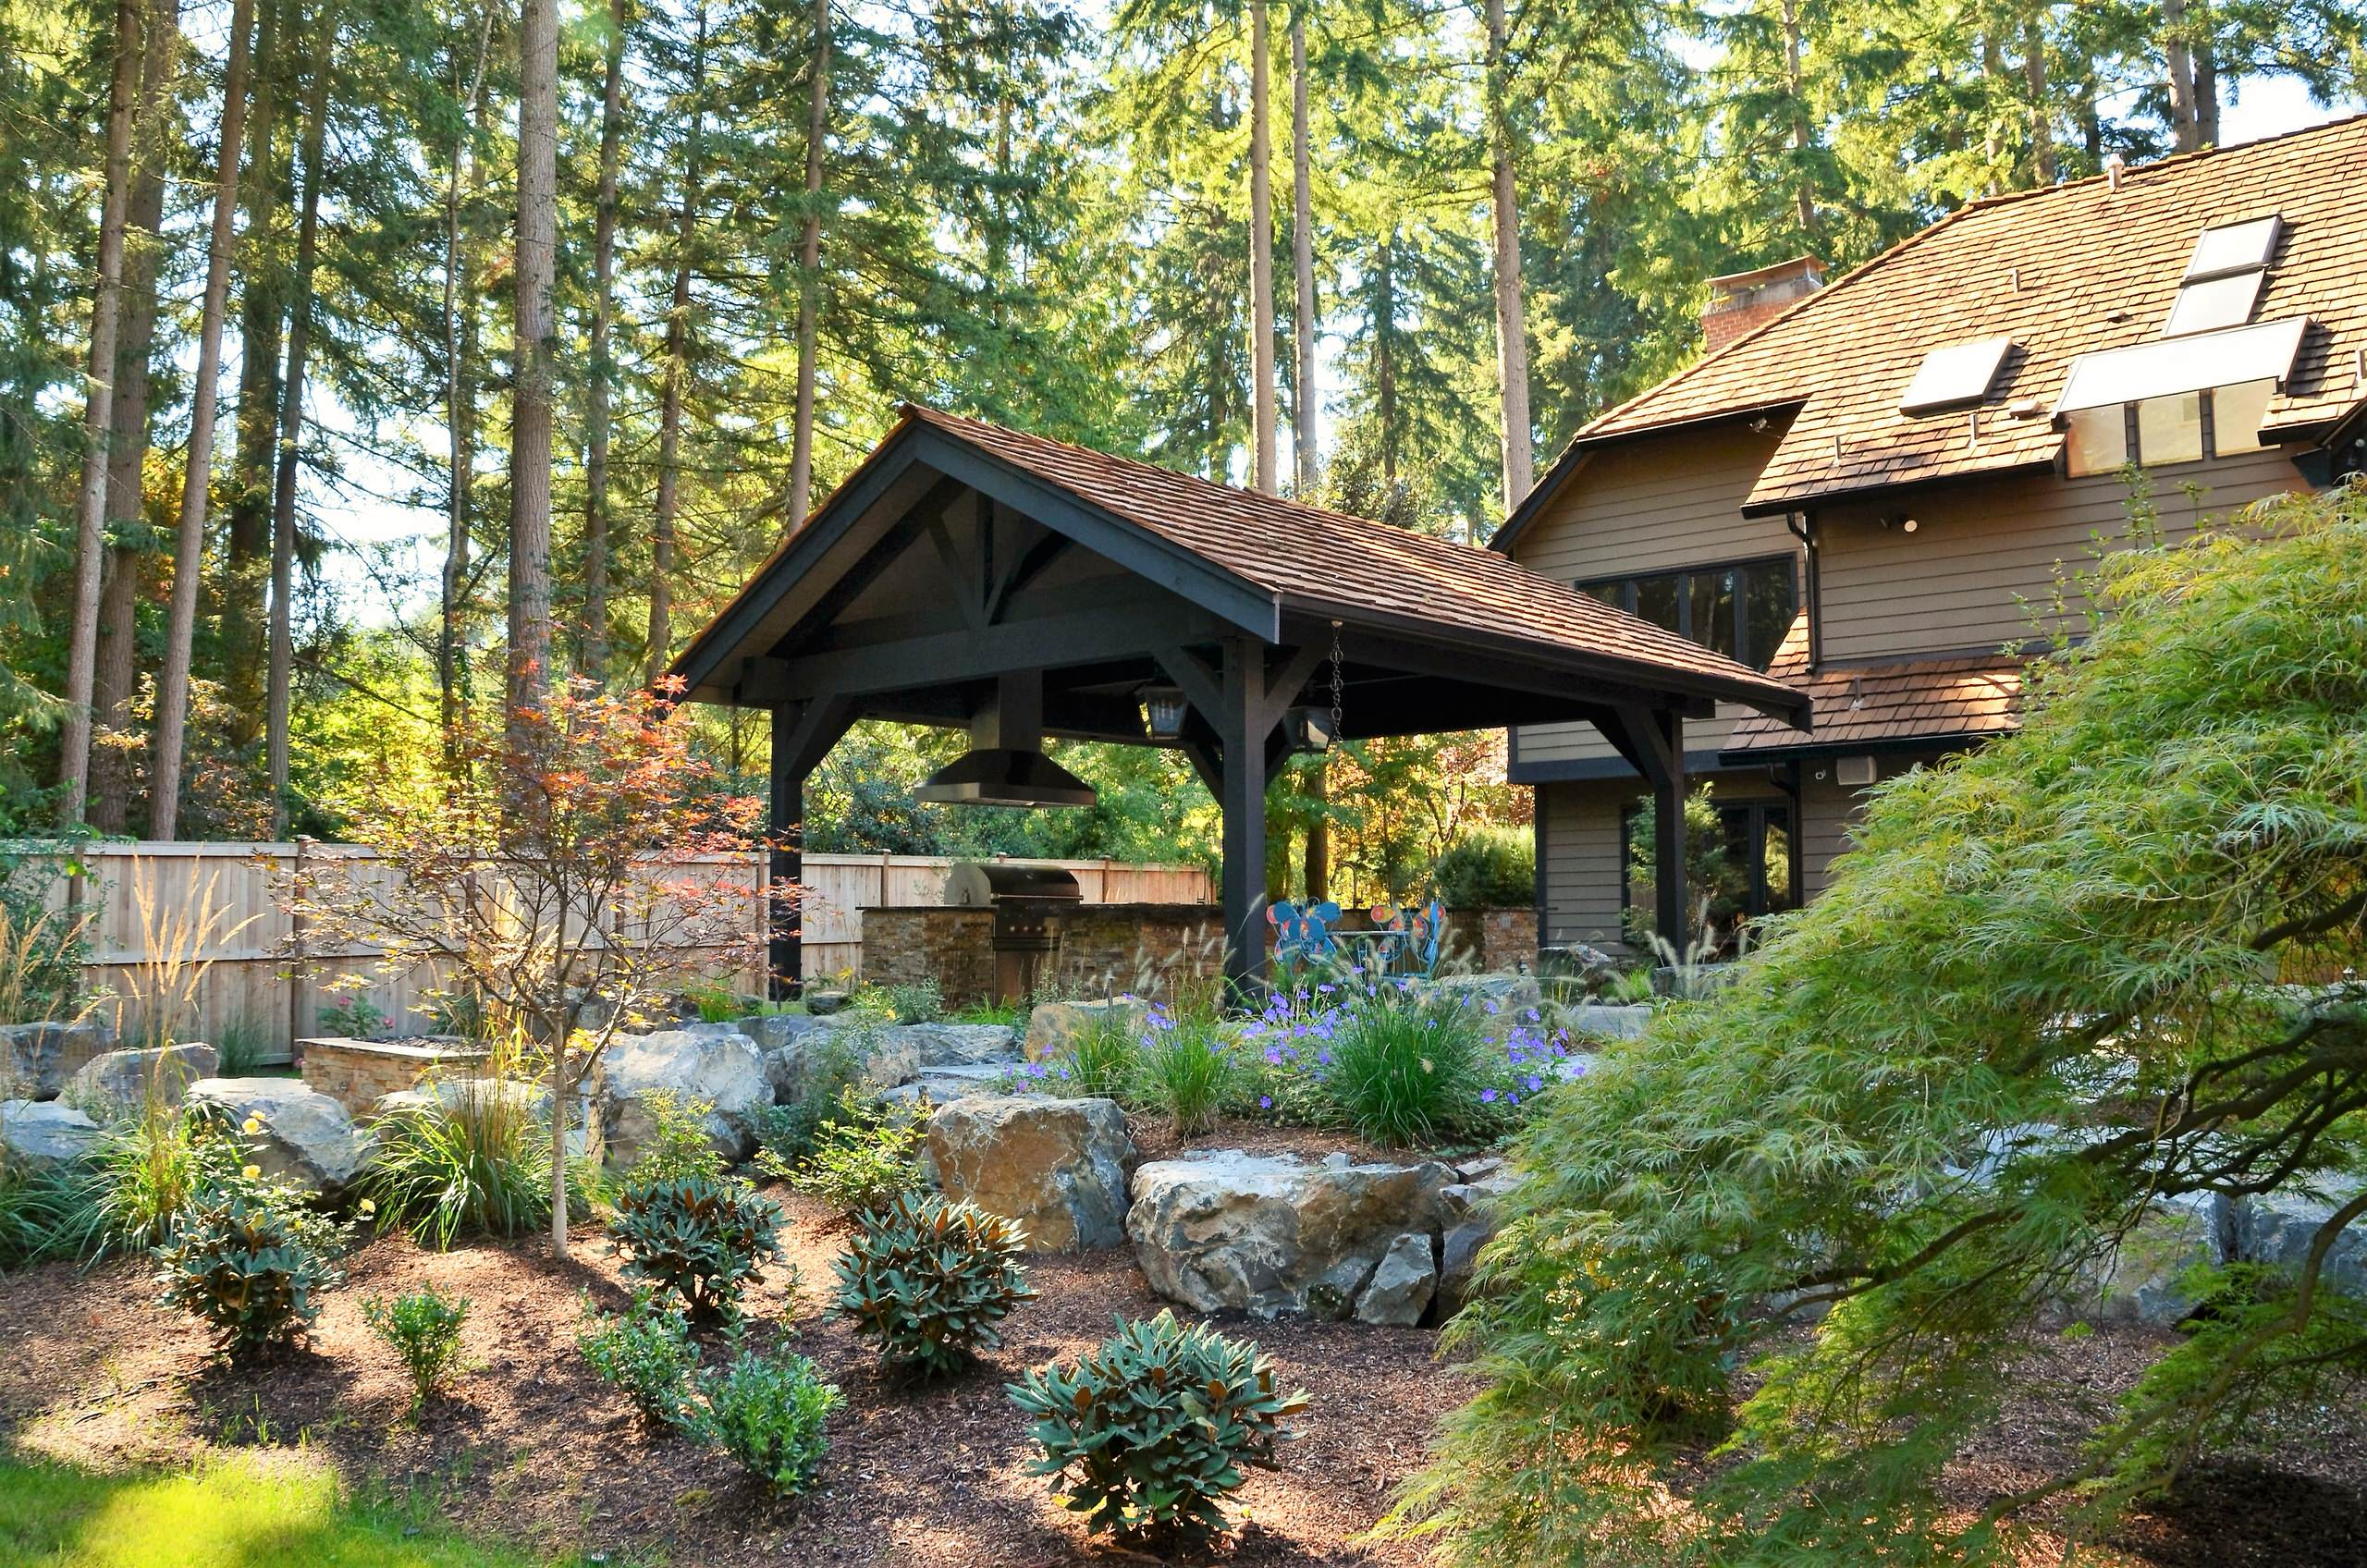 15 Stunning Rustic Landscape Designs That Will Take Your ... on Rustic Backyard Ideas id=96629